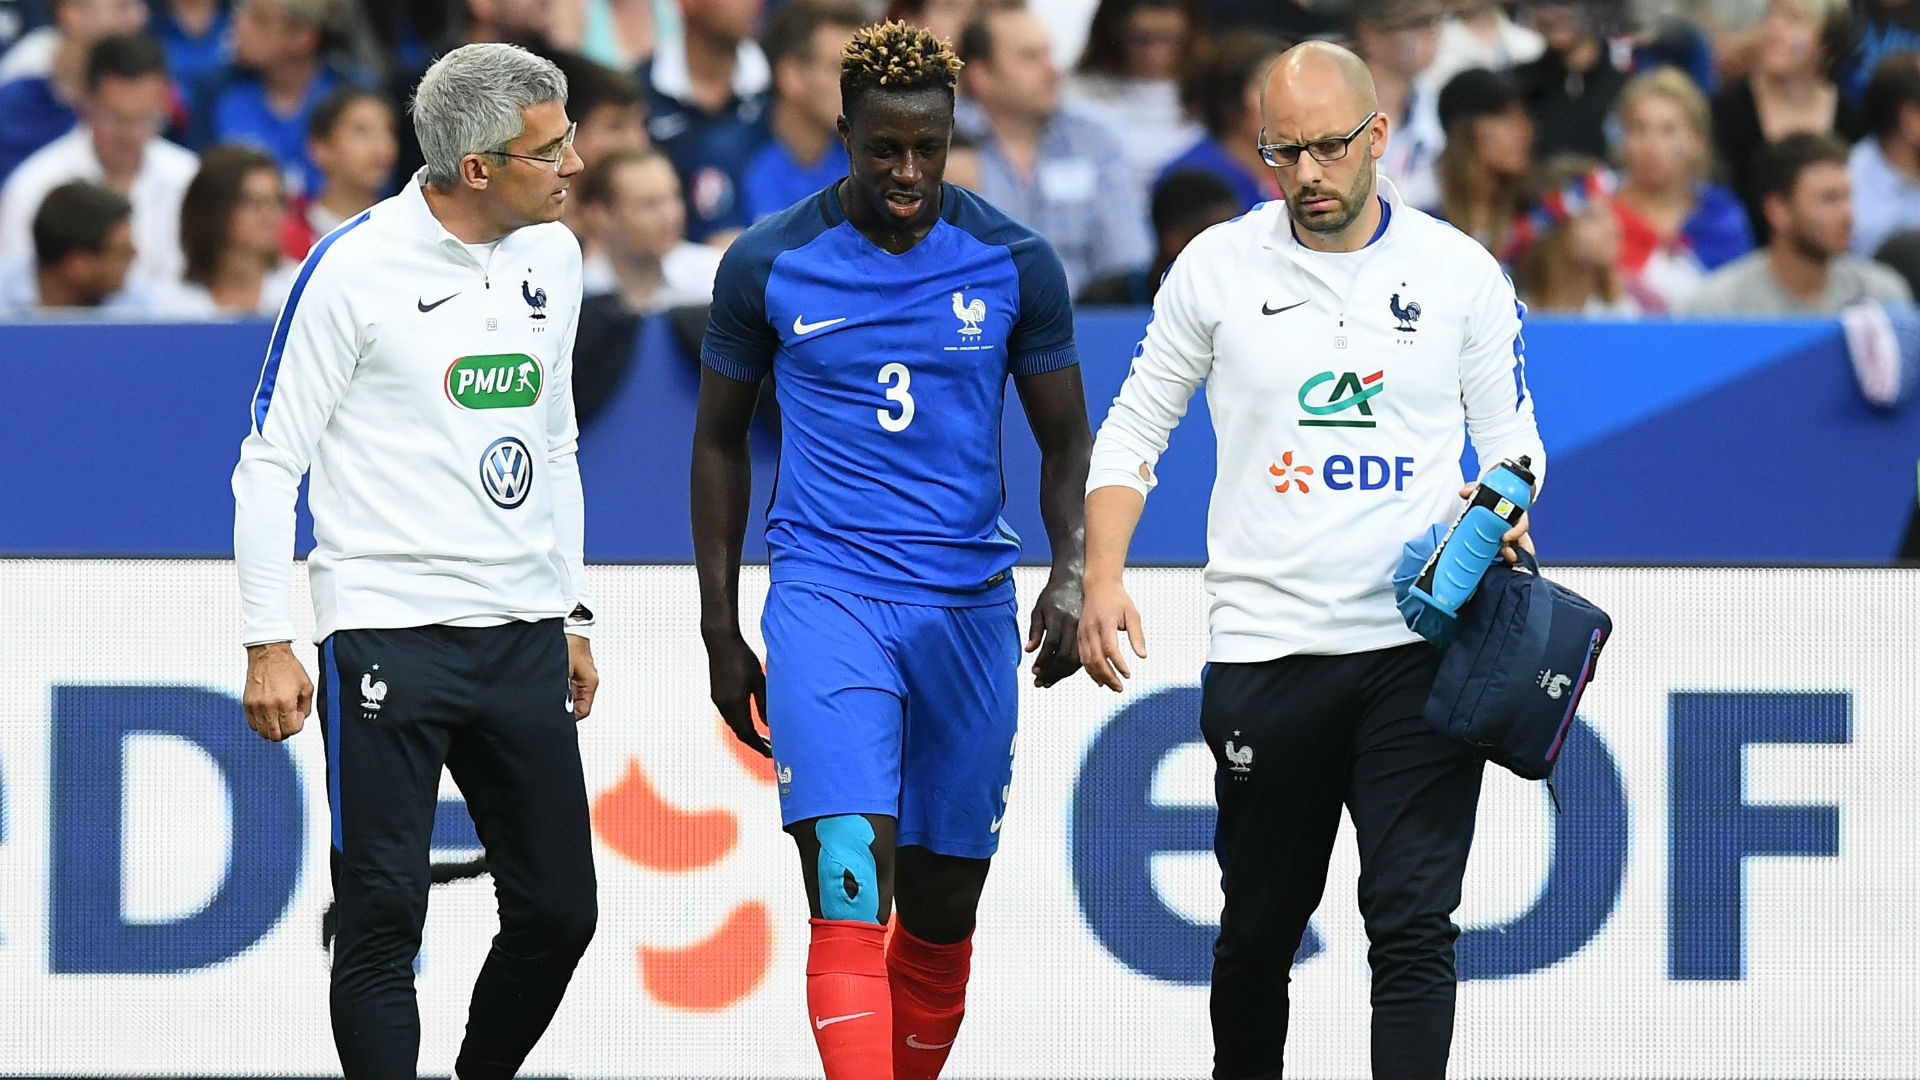 Benjamin Mendy France England